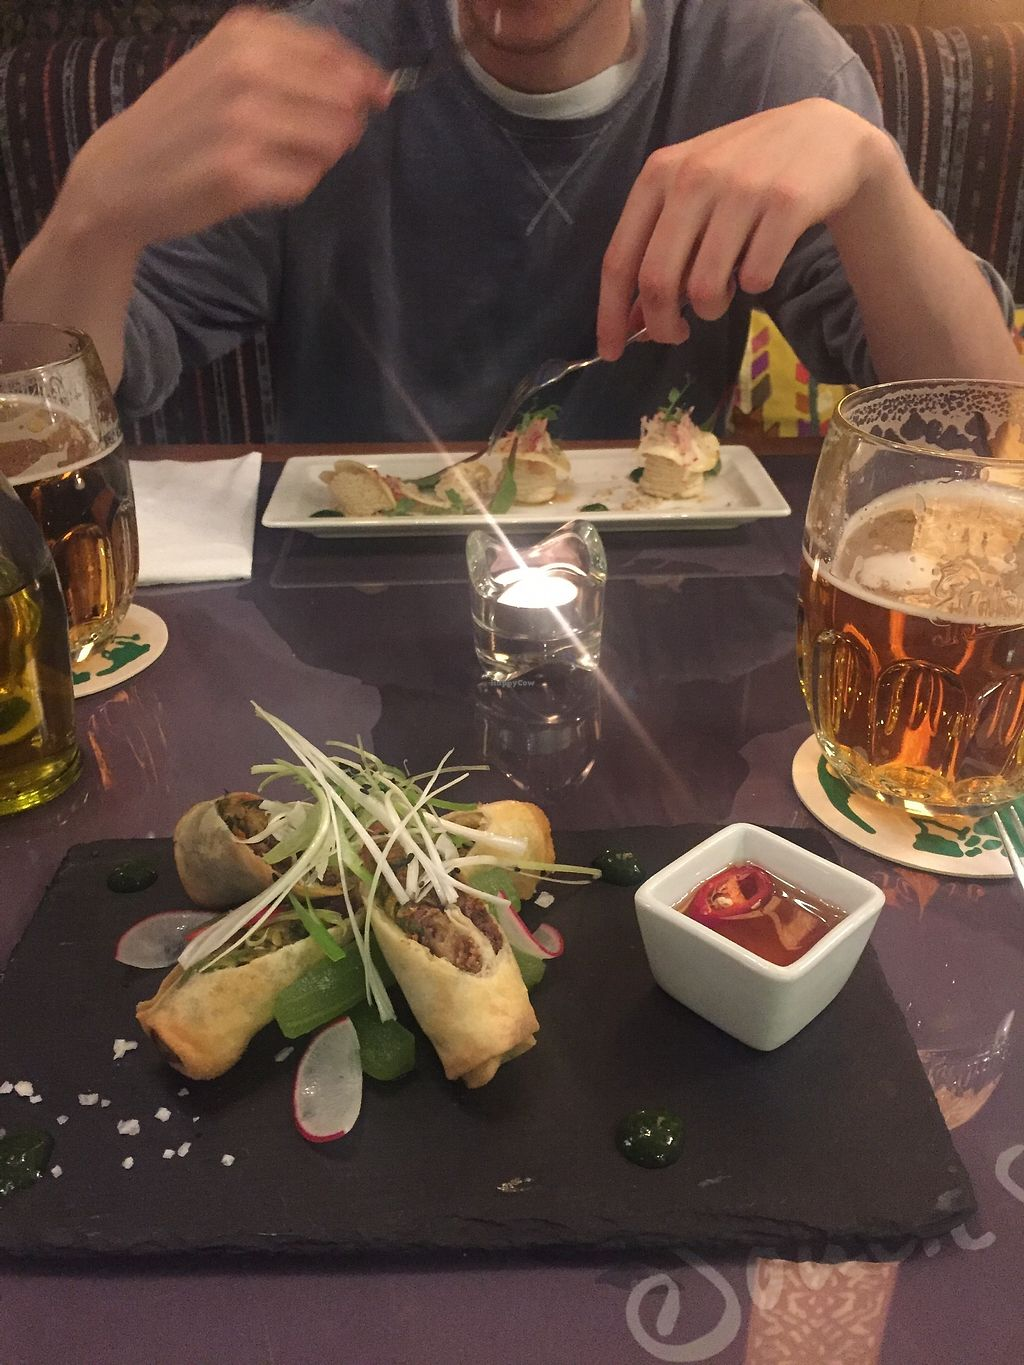 """Photo of Etnosvet  by <a href=""""/members/profile/OliviaFloyd"""">OliviaFloyd</a> <br/>Mock duck spring rolls <br/> April 13, 2018  - <a href='/contact/abuse/image/63181/385009'>Report</a>"""